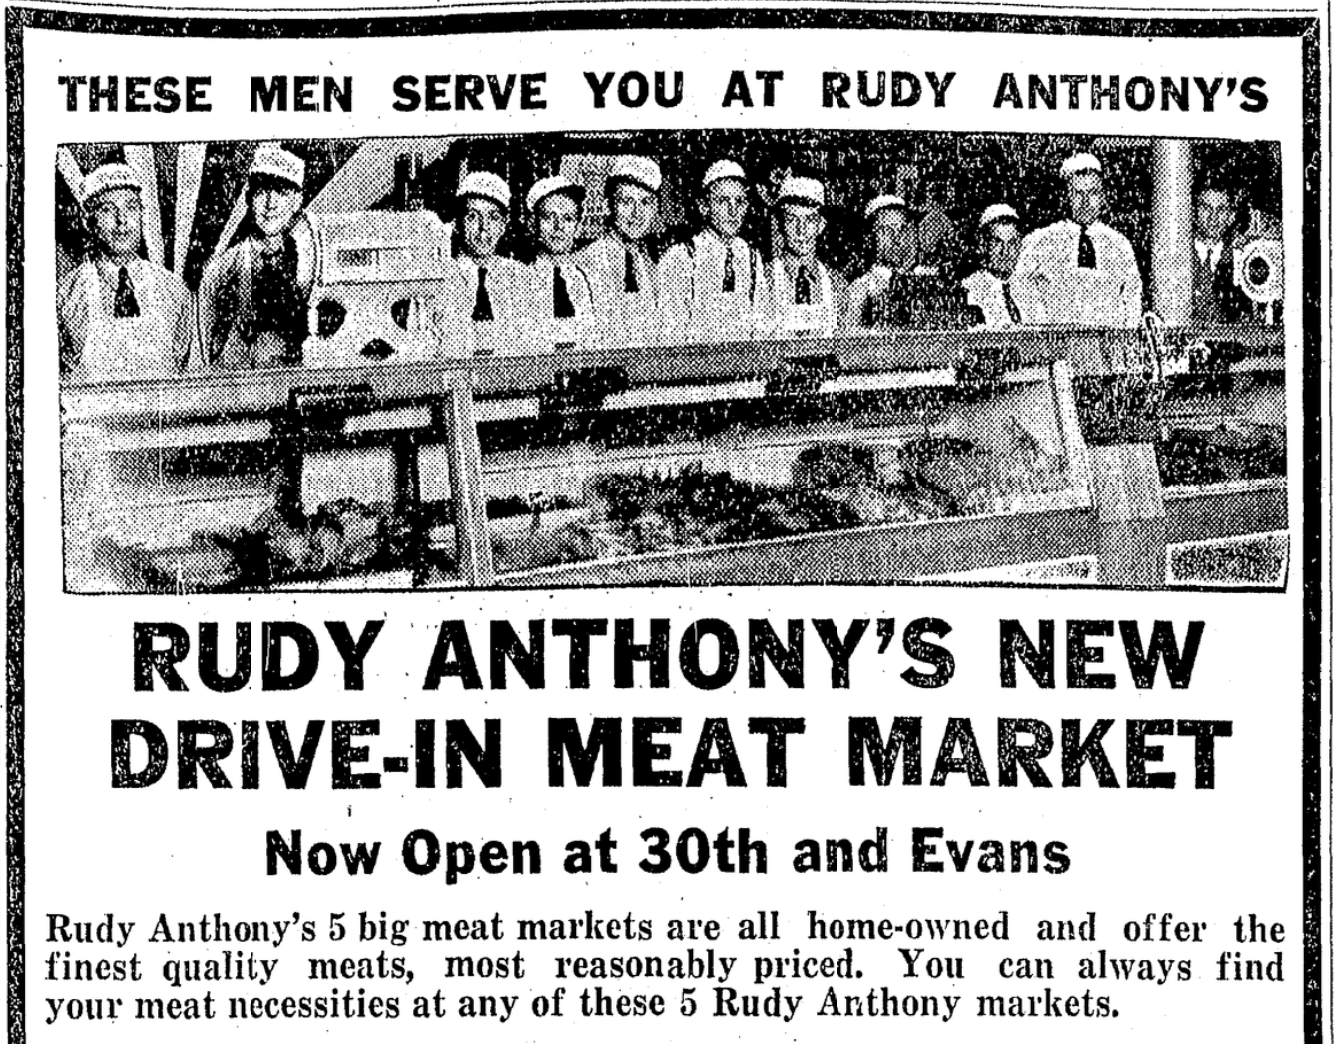 This 1930 ad for Rudy Anthory's Meat Market, North 30th and Evans Street, North Omaha, Nebraska.